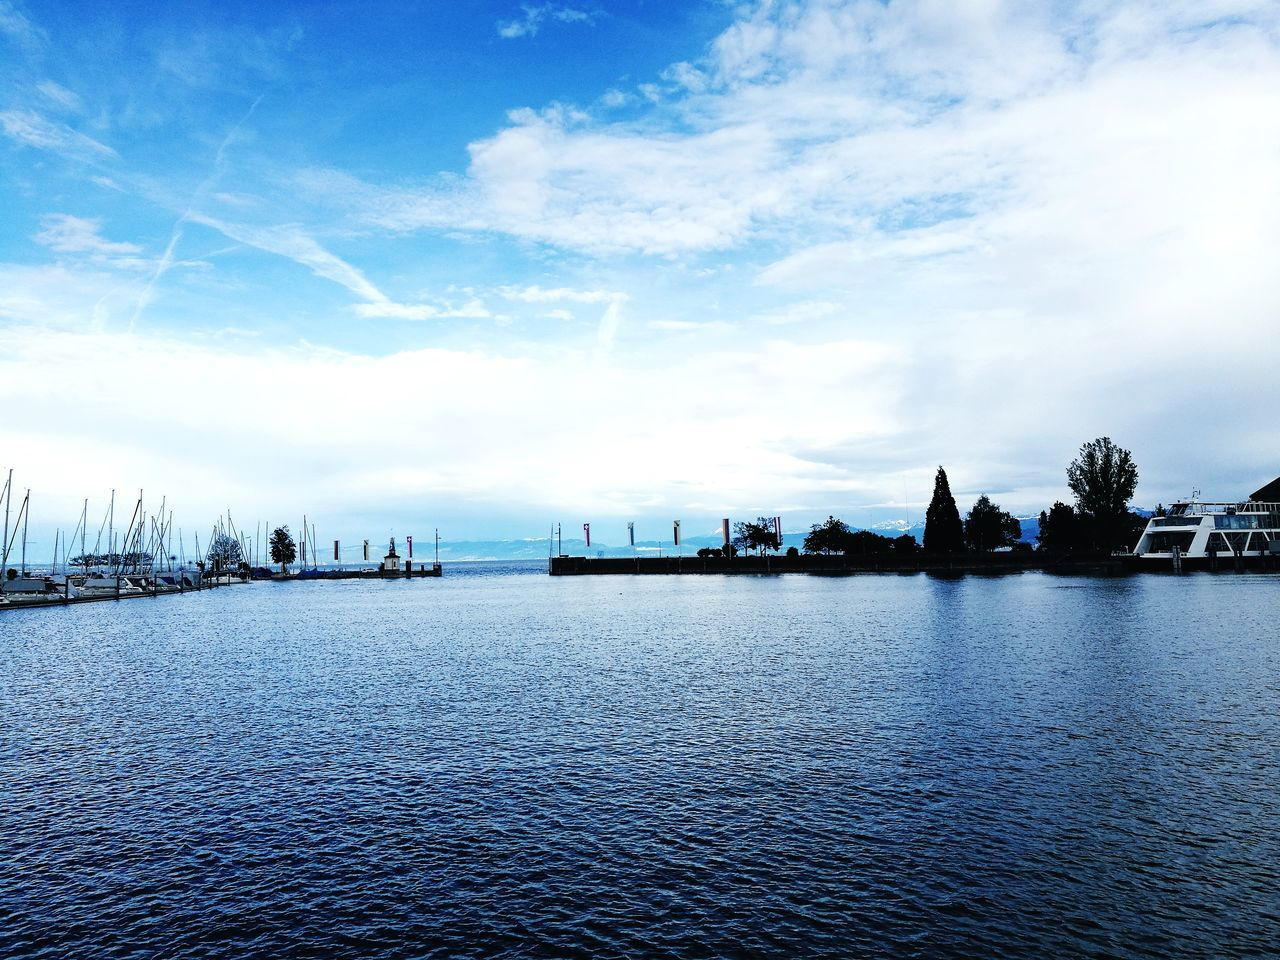 sky, water, waterfront, cloud - sky, river, outdoors, no people, architecture, city, built structure, rippled, nautical vessel, day, building exterior, beauty in nature, scenics, nature, harbor, cityscape